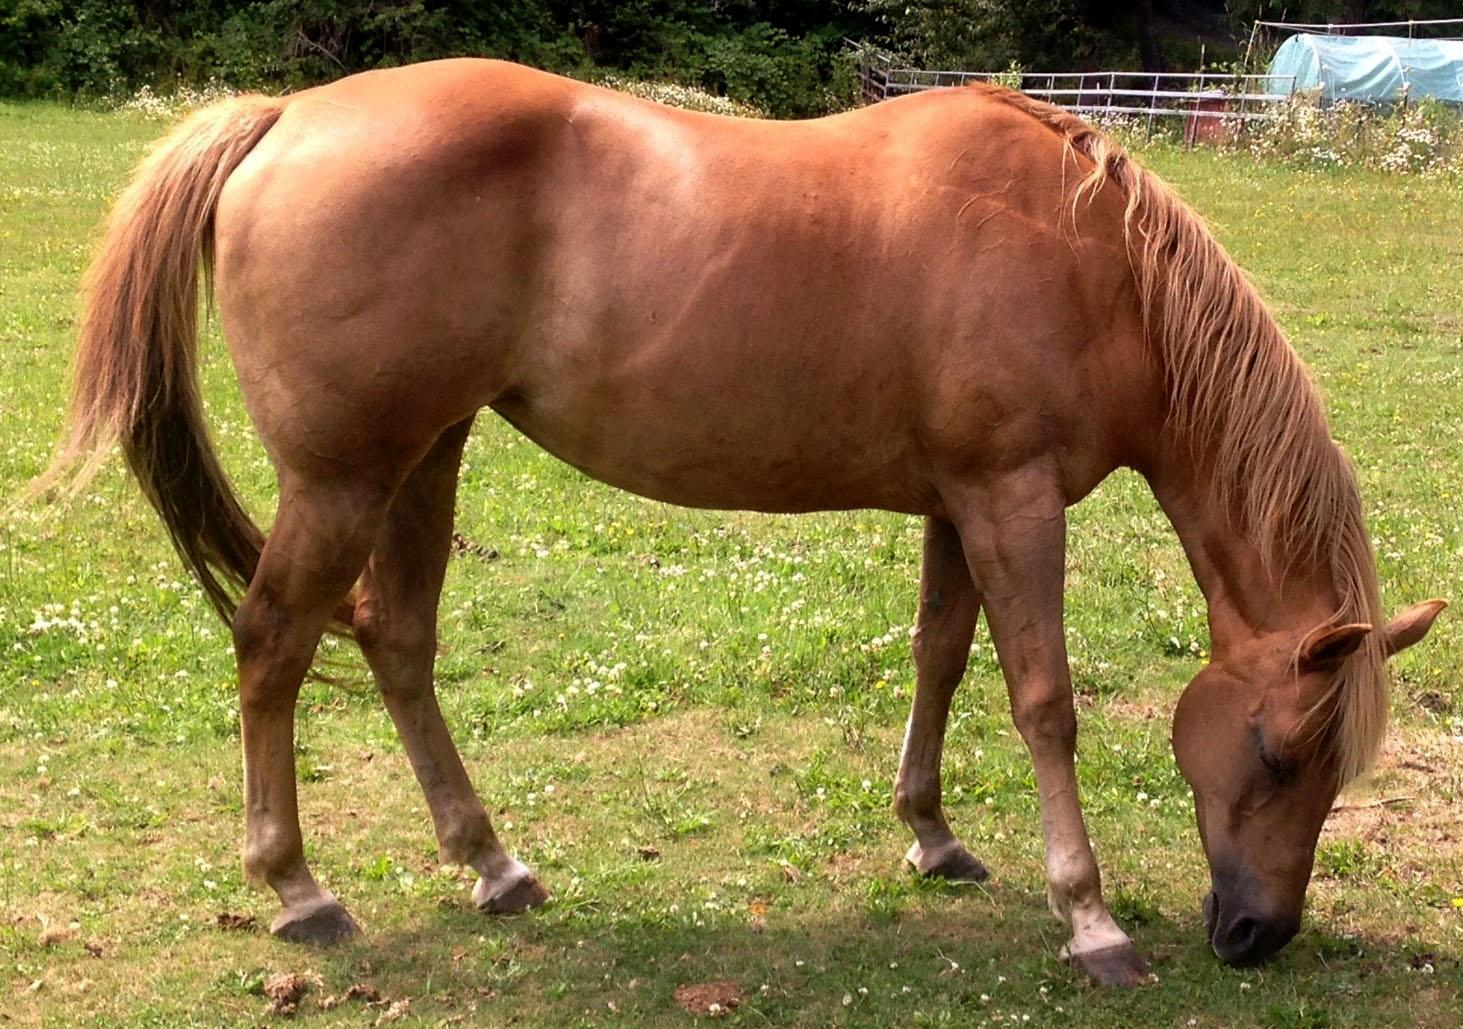 Horse with Abscesses